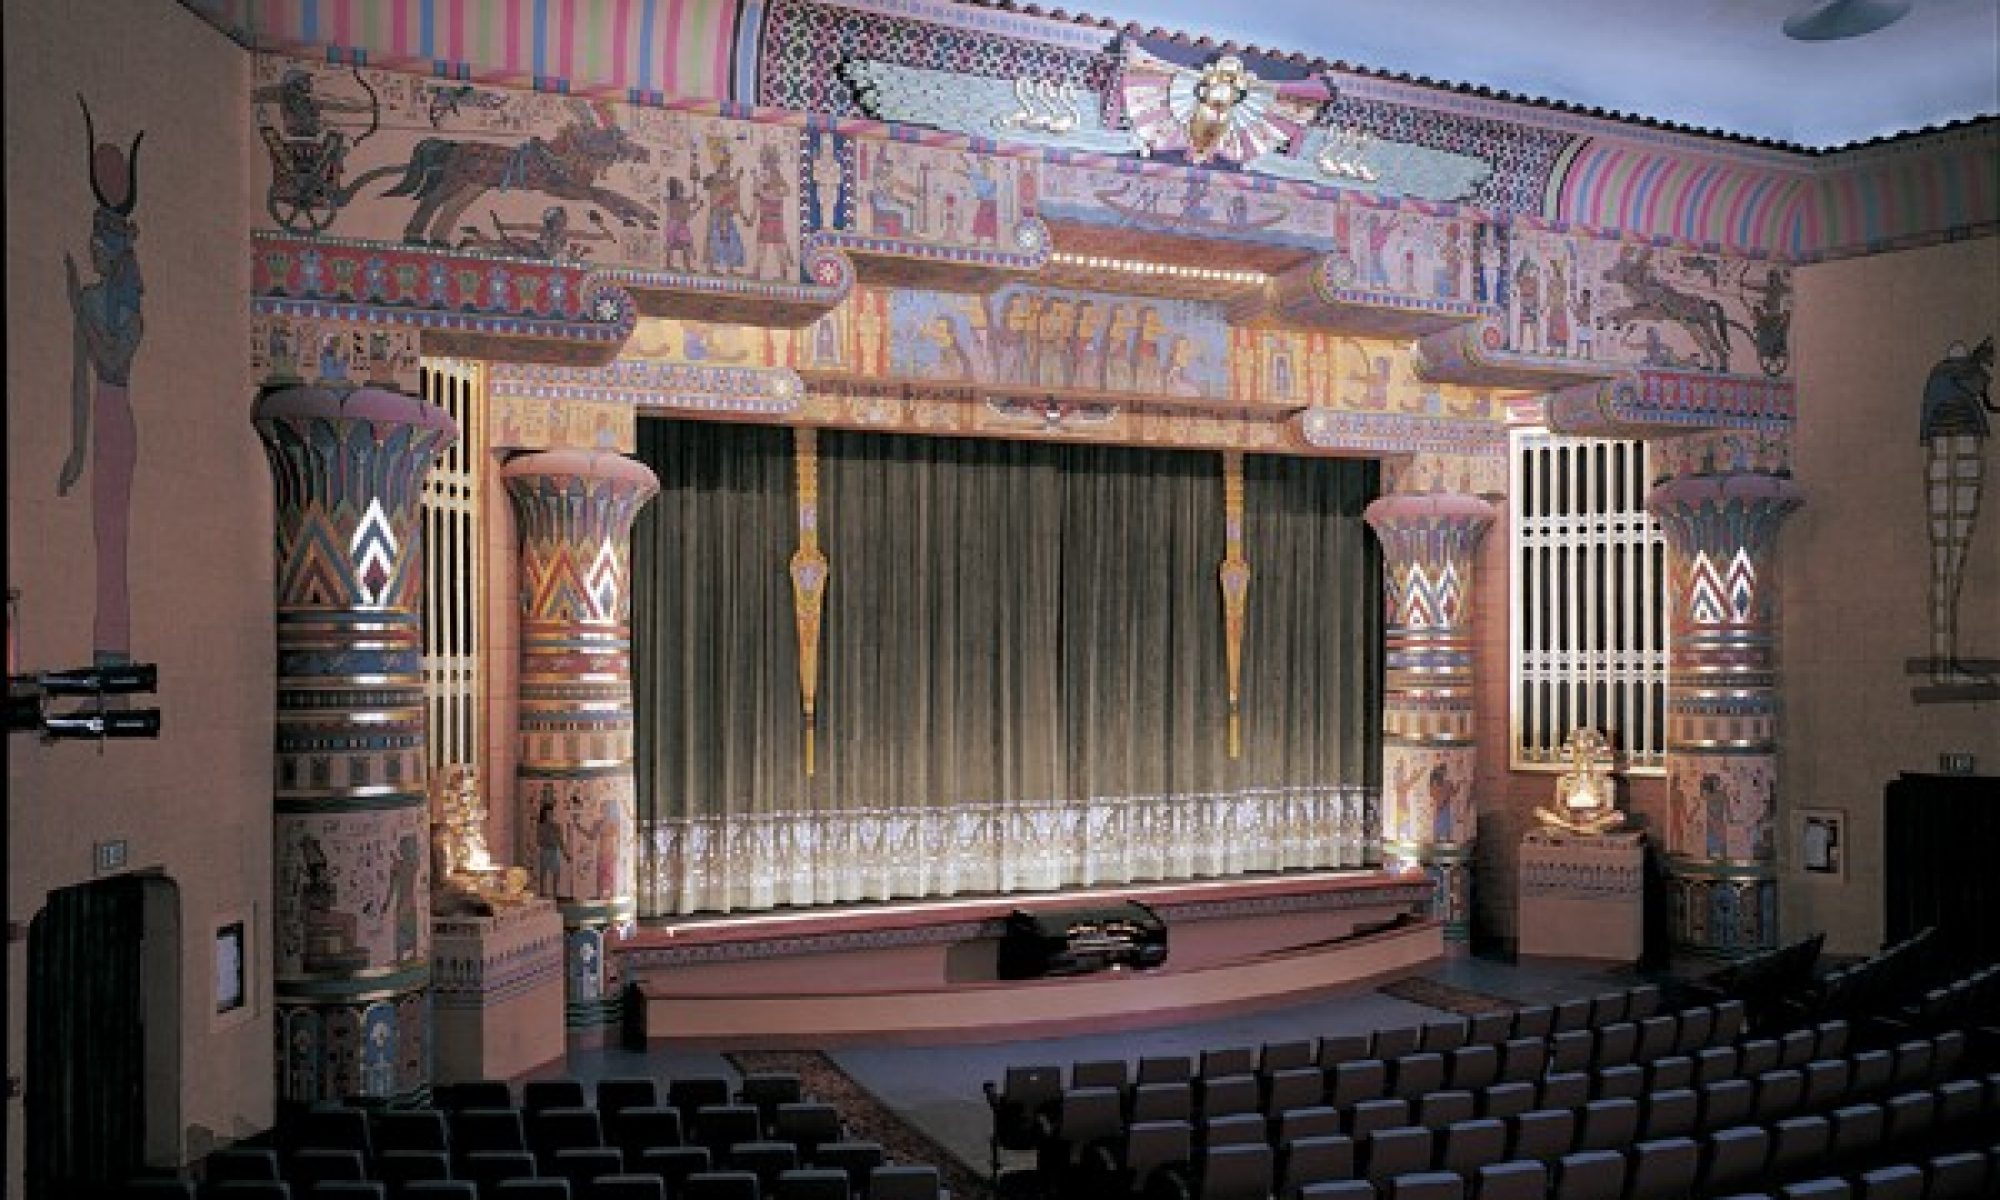 The Campaign to Restore the Egyptian Theatre Organ